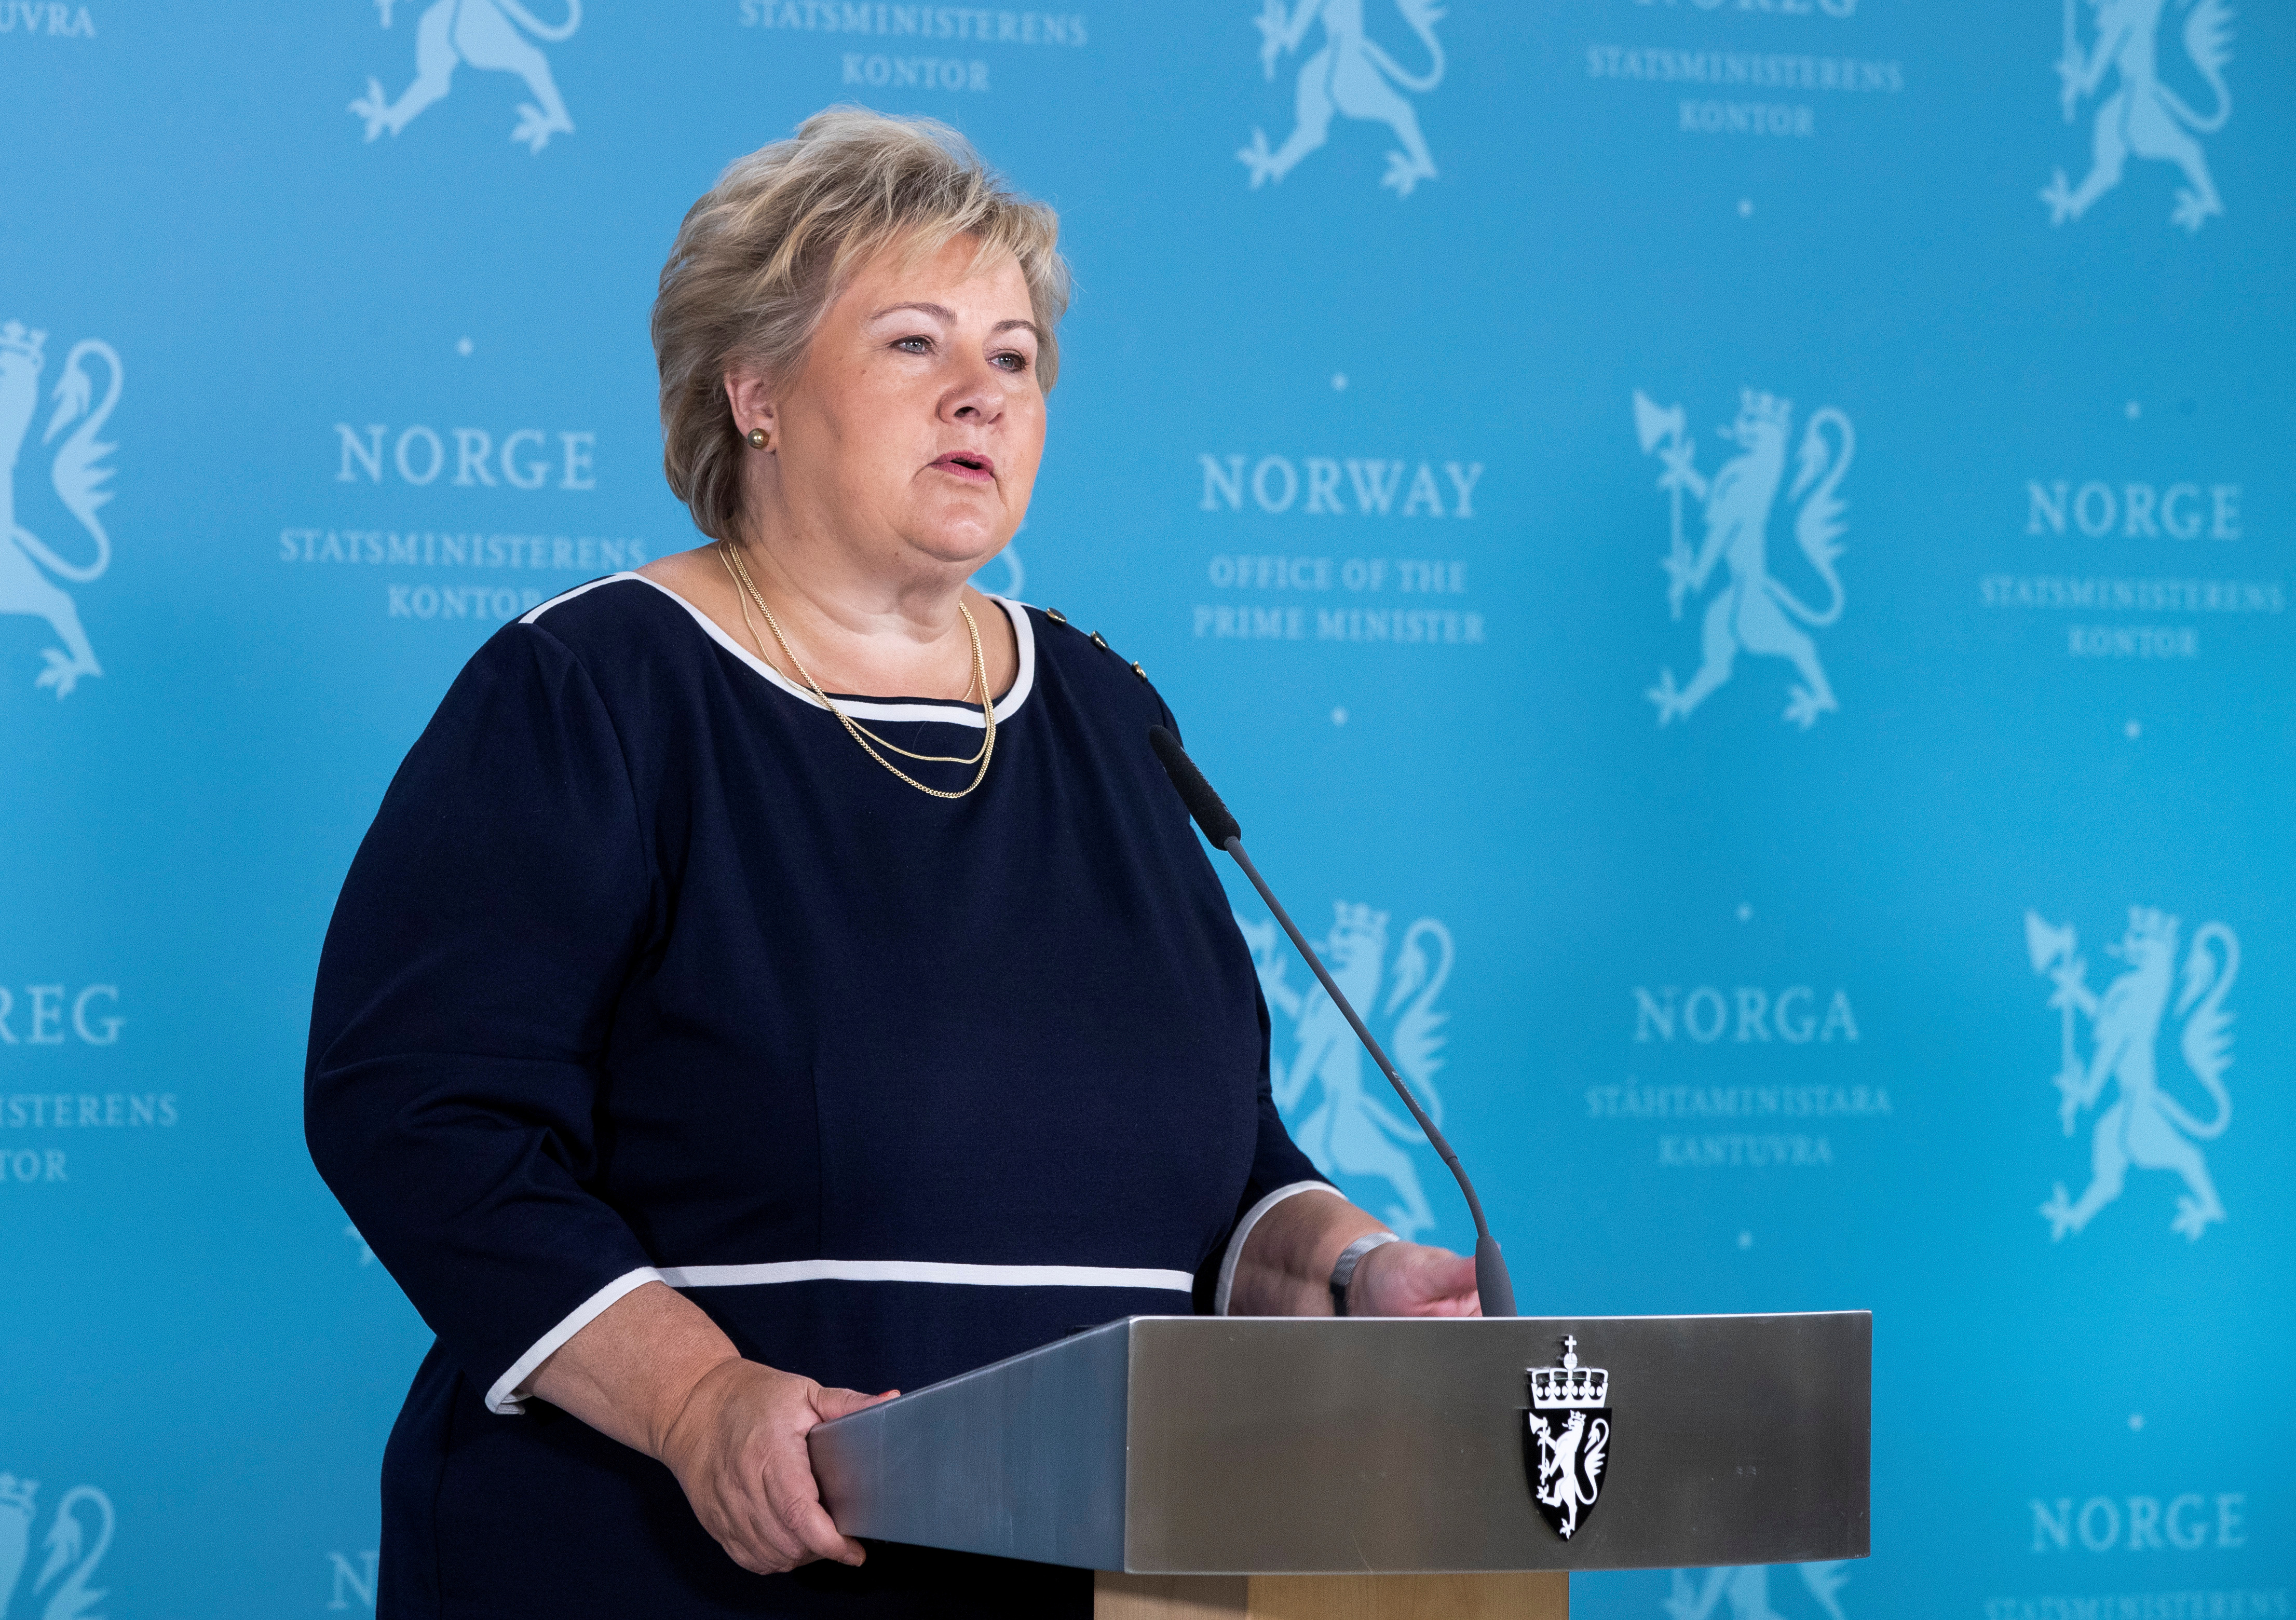 Norway's Prime Minister Erna Solberg speaks during a news conference about the coronavirus disease (COVID-19), in Oslo, Norway September 3, 2020. Berit Roald/NTB Scanpix/via REUTERS/File Photo